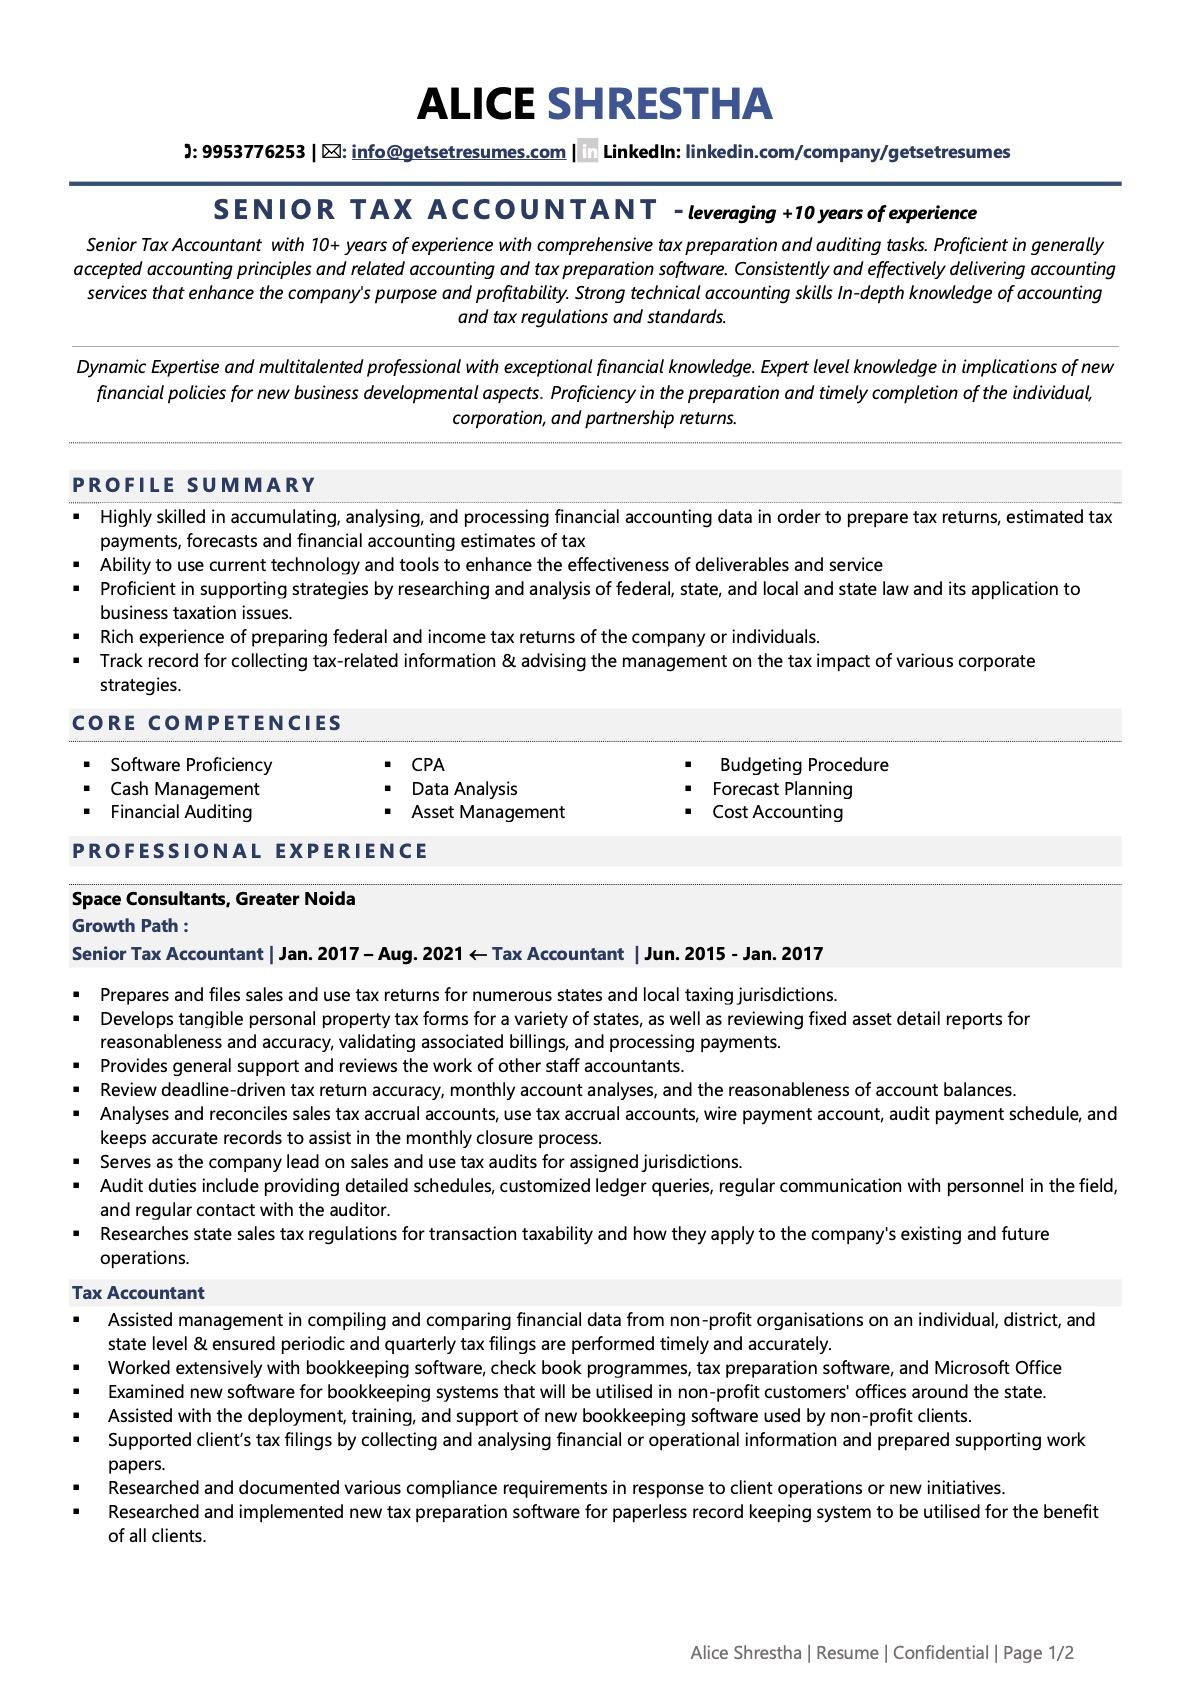 Tax Accountant - Resume Example & Template